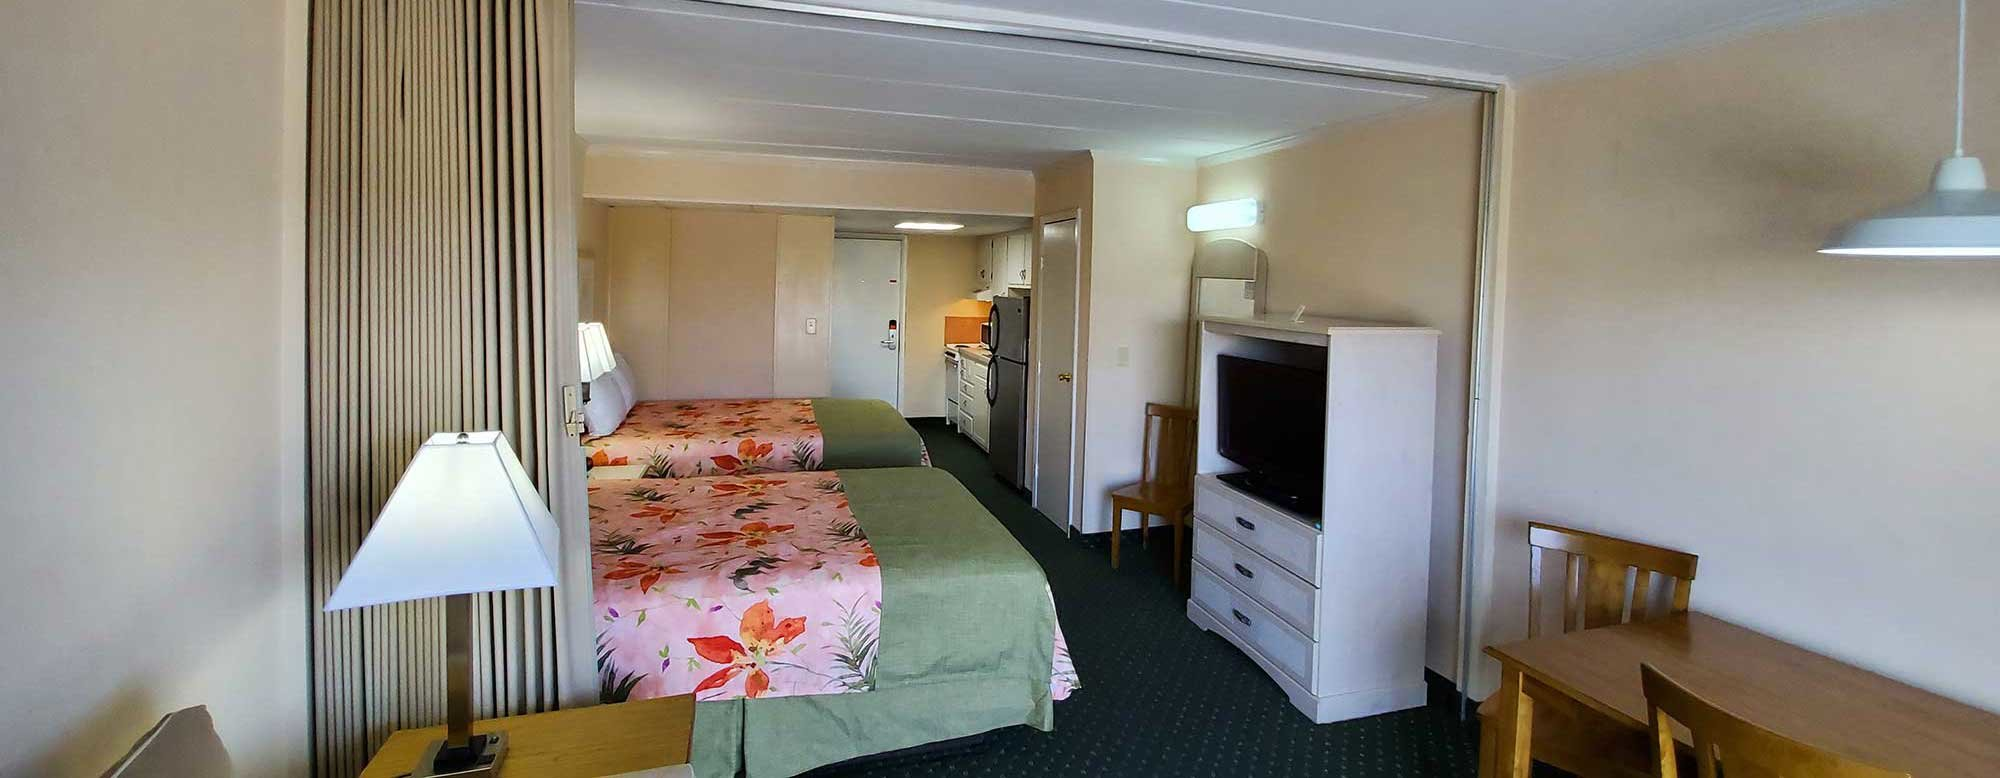 Efficiency Room at the Sea Hawk Motel with two queen beds, TV, table and kitchen